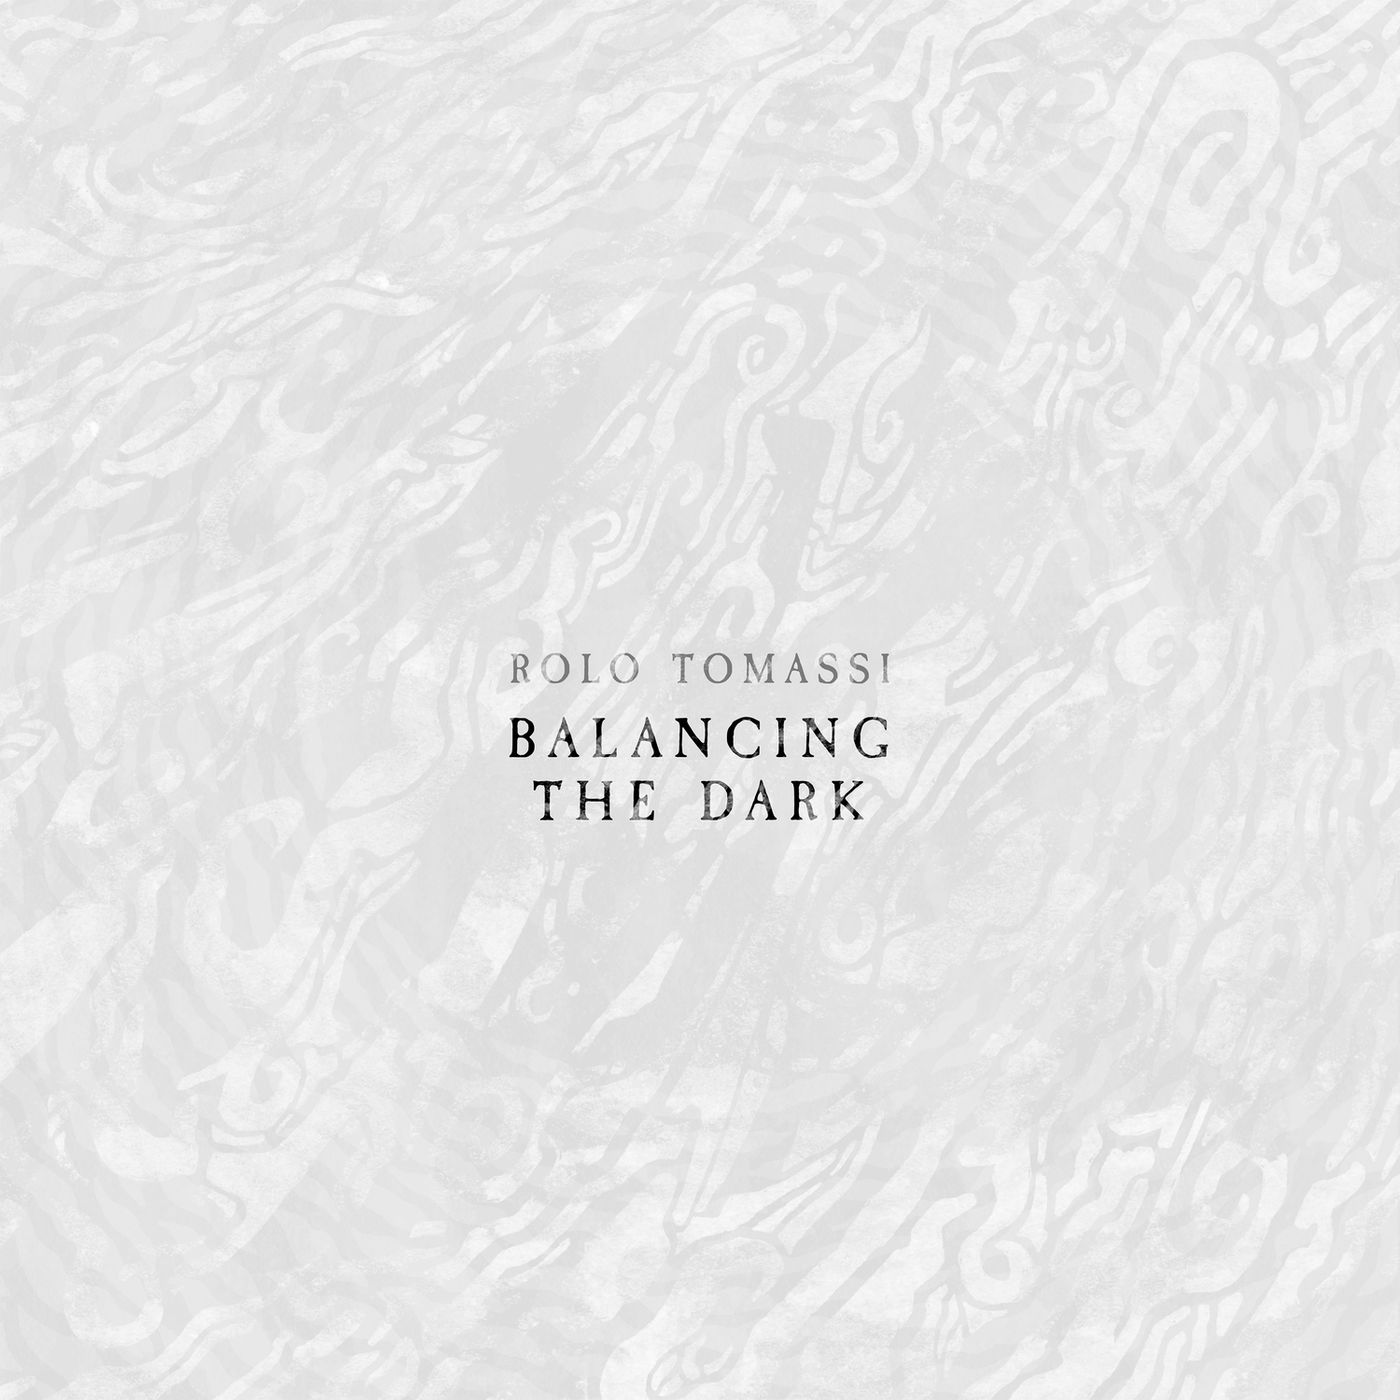 Rolo Tomassi - Balancing the Dark [single] (2017)